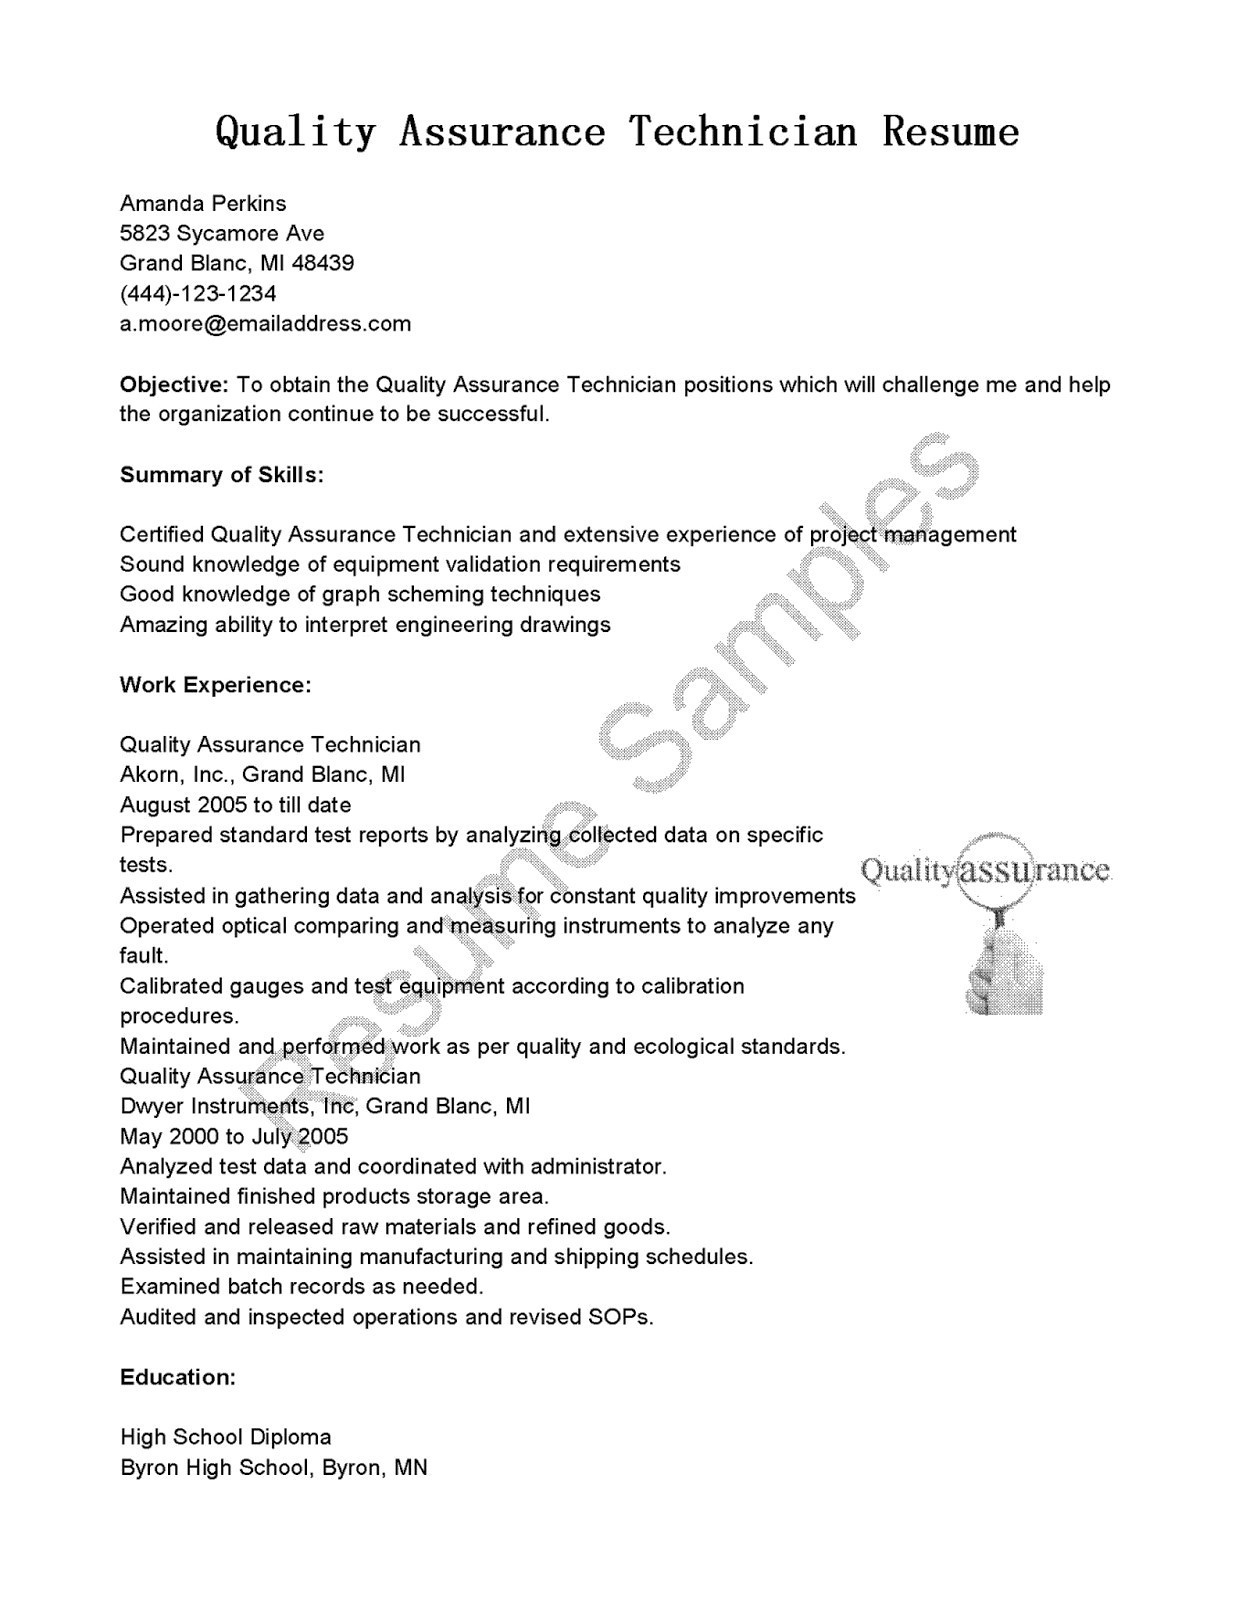 Quality assurance Resume Template - High School Sample Cover Letter New Resumes and Cover Letters